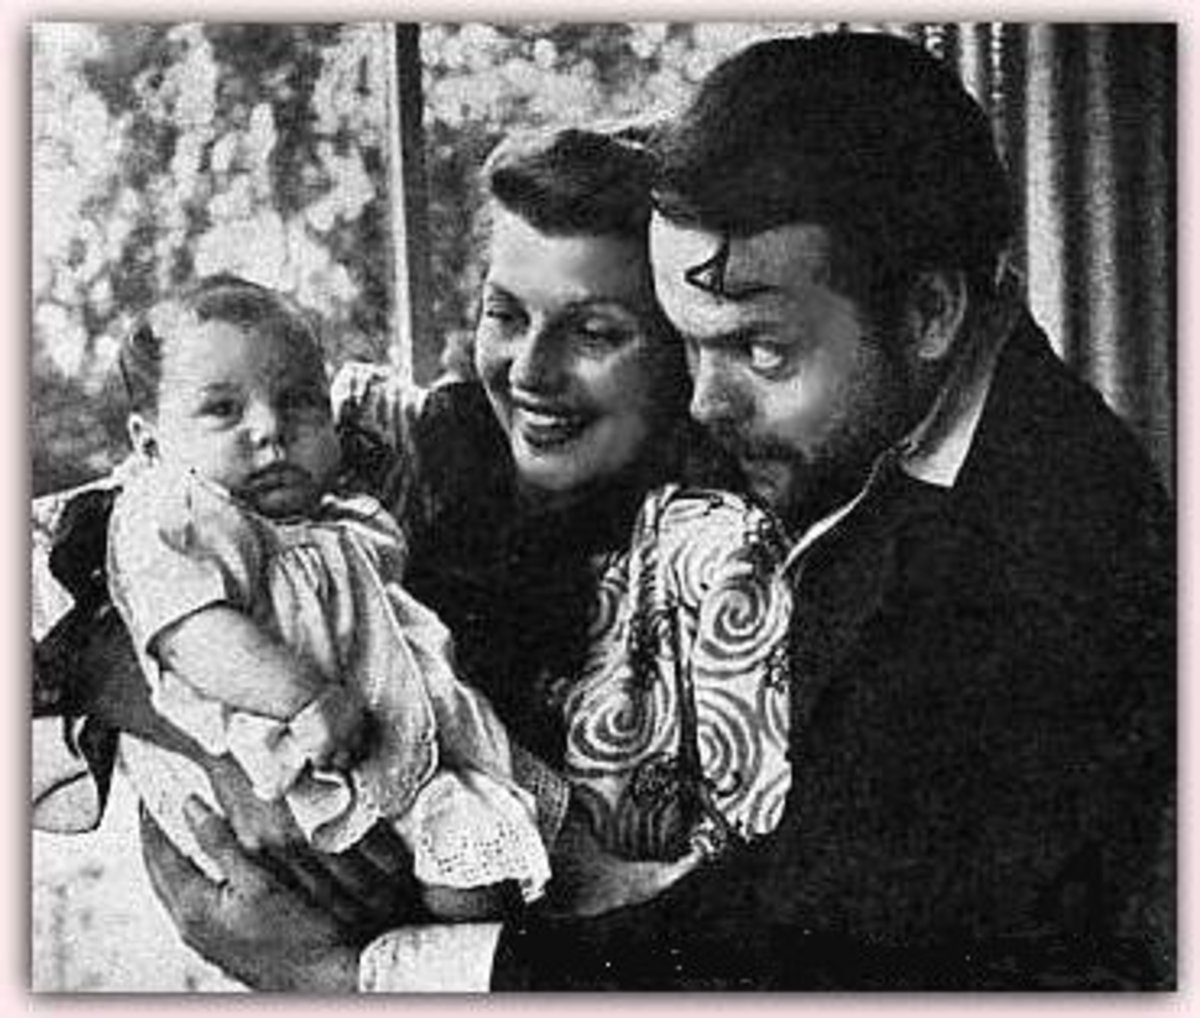 With Orson and baby Rebecca